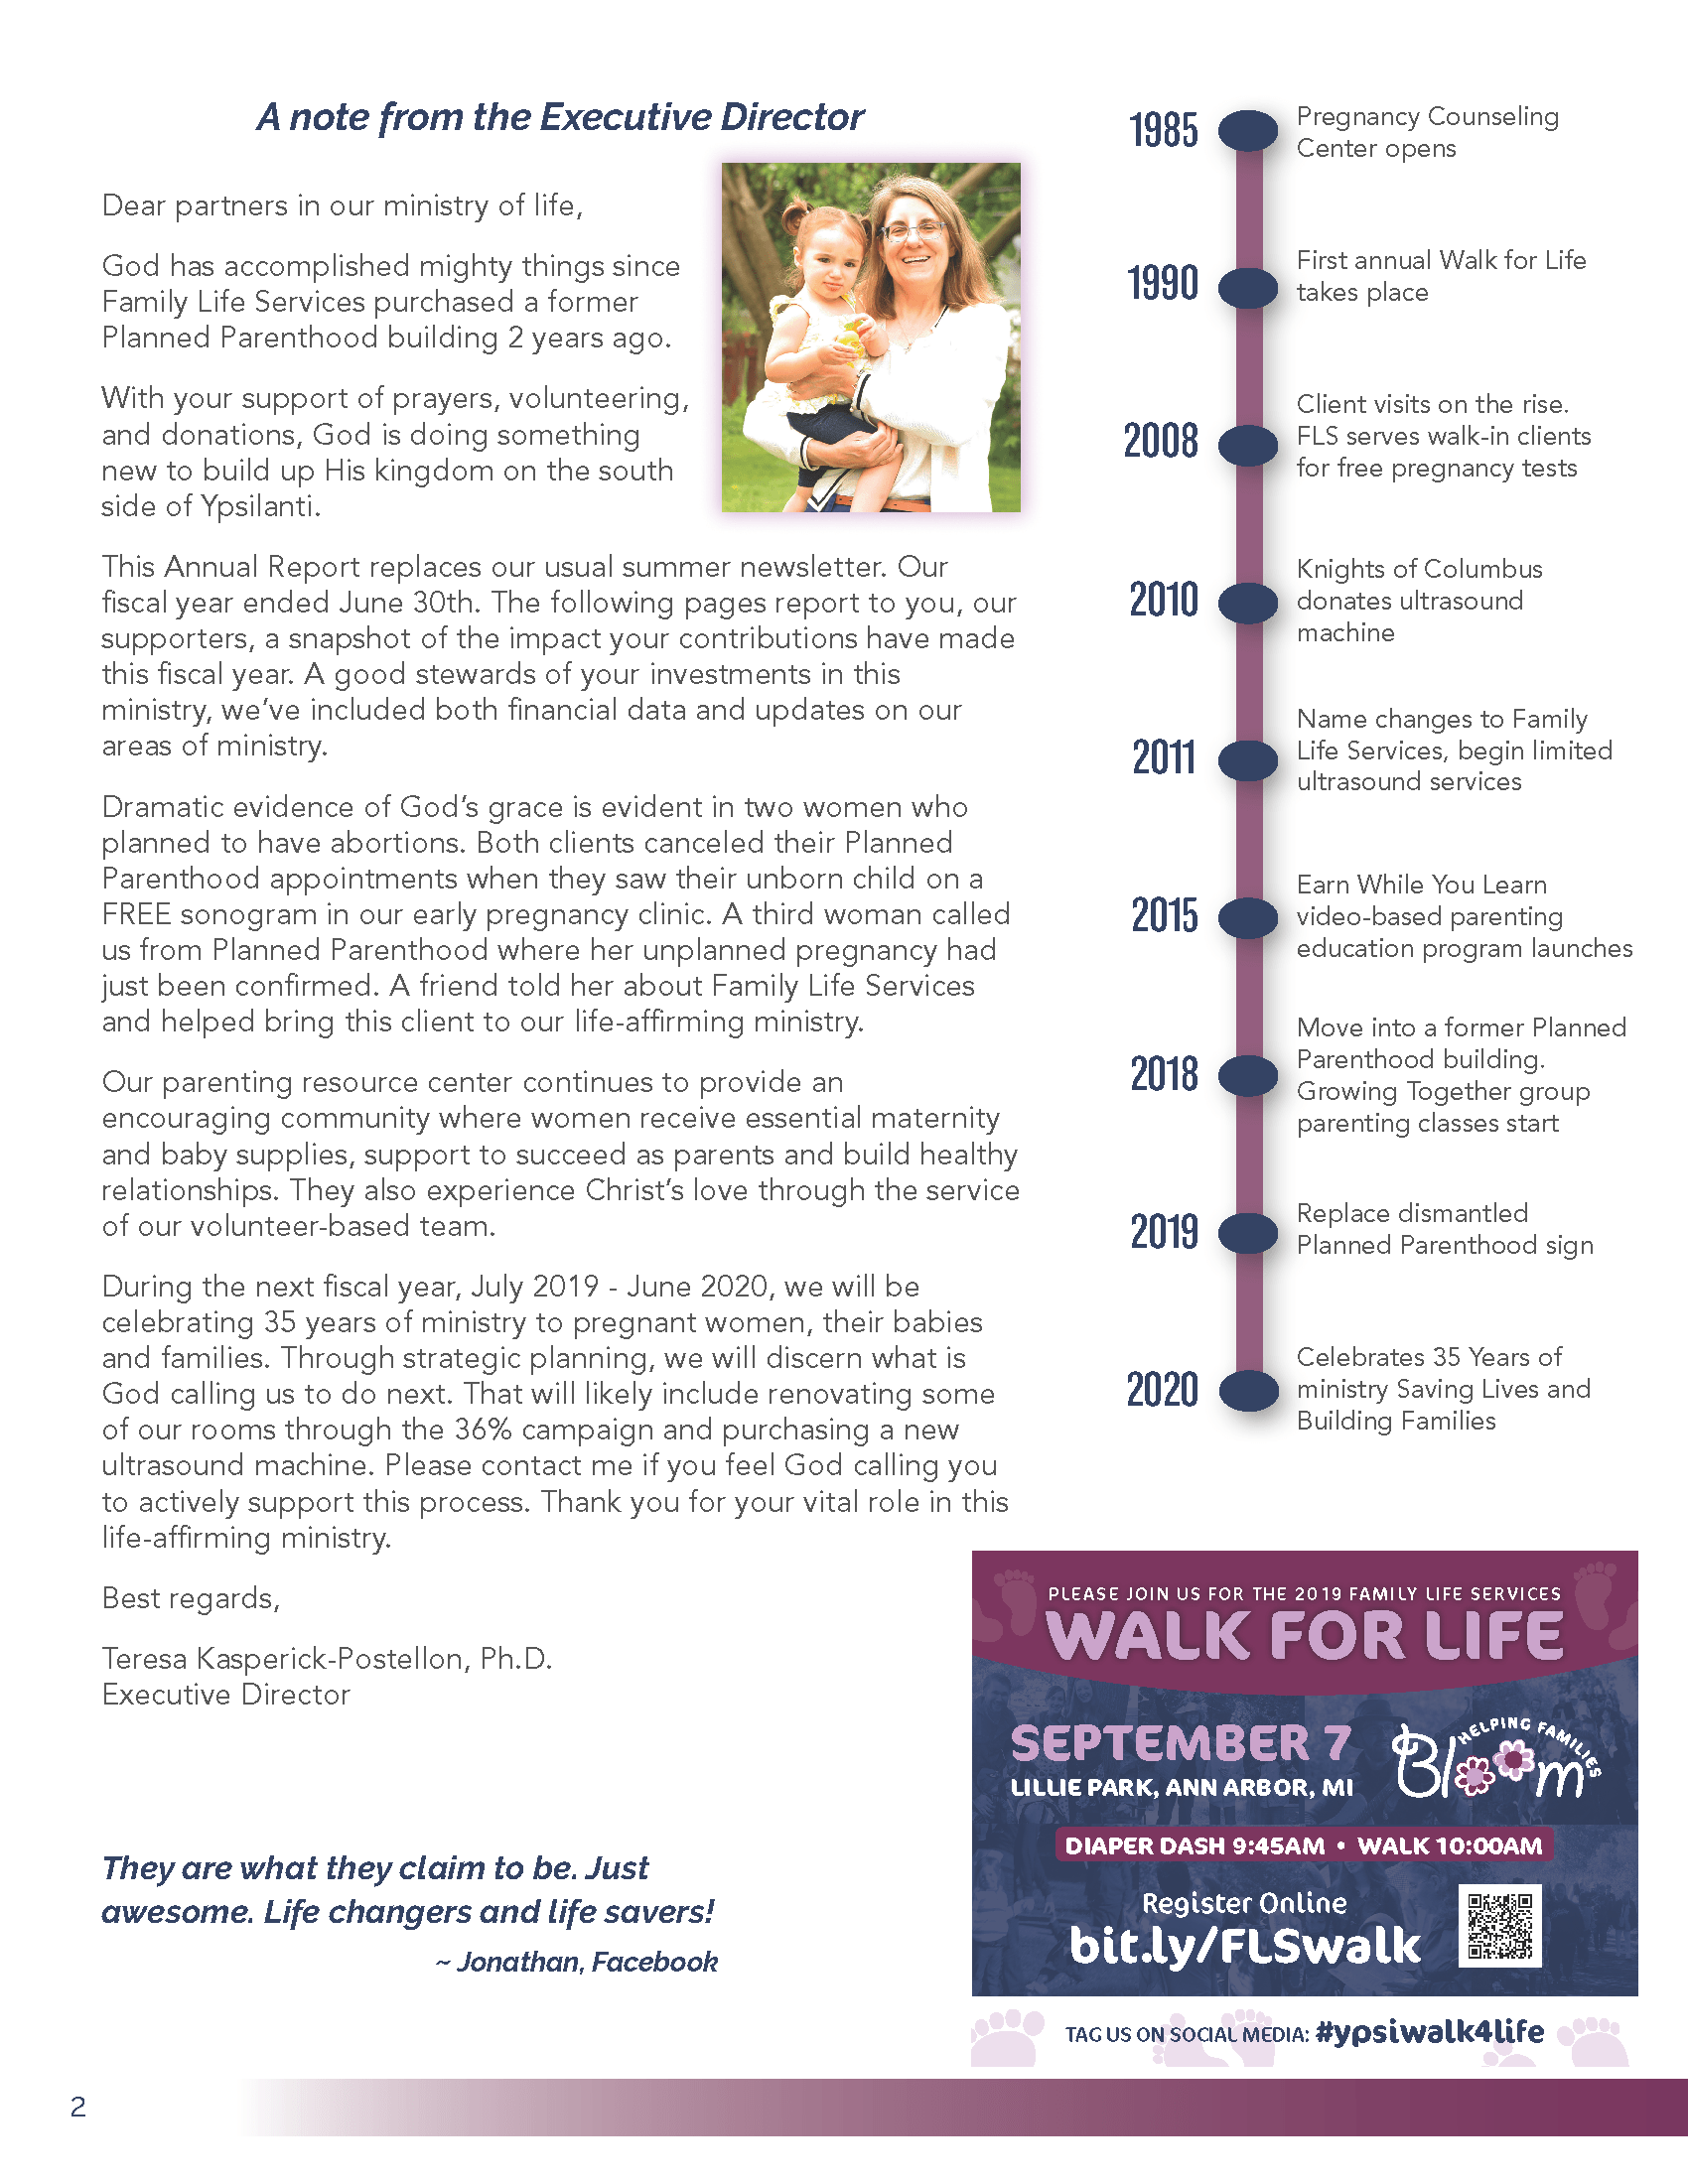 Image of 2019 Annual Report Page 2, Executive Director's report, Family Life Services Timeline, Save the Date for Walk for Life September 7, 2019, 10:00 am at Lillie Park, Platt Road just south of Ellsworth, Pittsfield Township, Michigan.